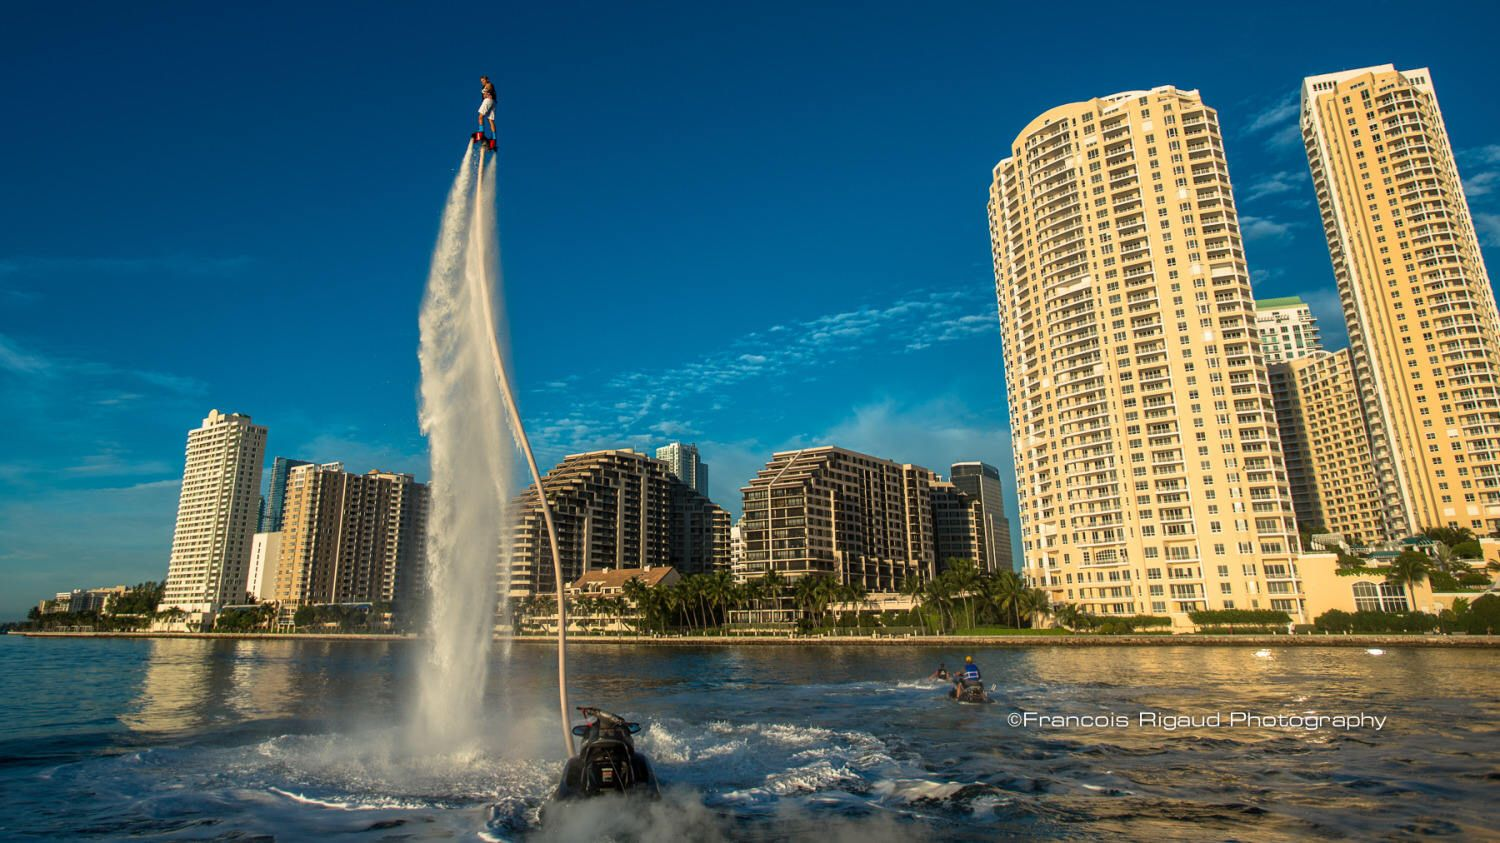 Pin Oleh Alstonia Oney Di Hoverboard And Flyboarding